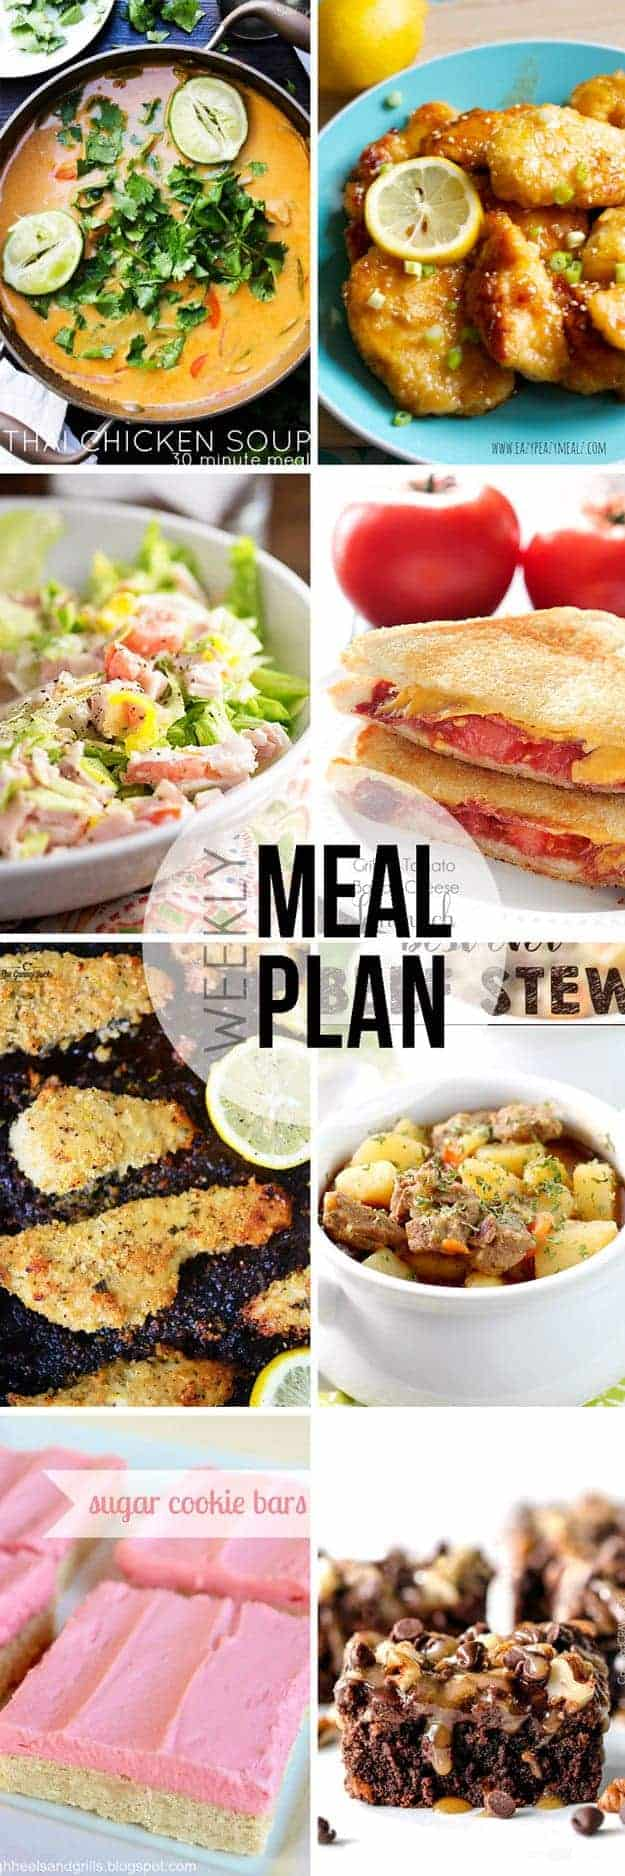 An easy weekly mean plan! This week's recipes are for lots of soup, salad, and comfort food!